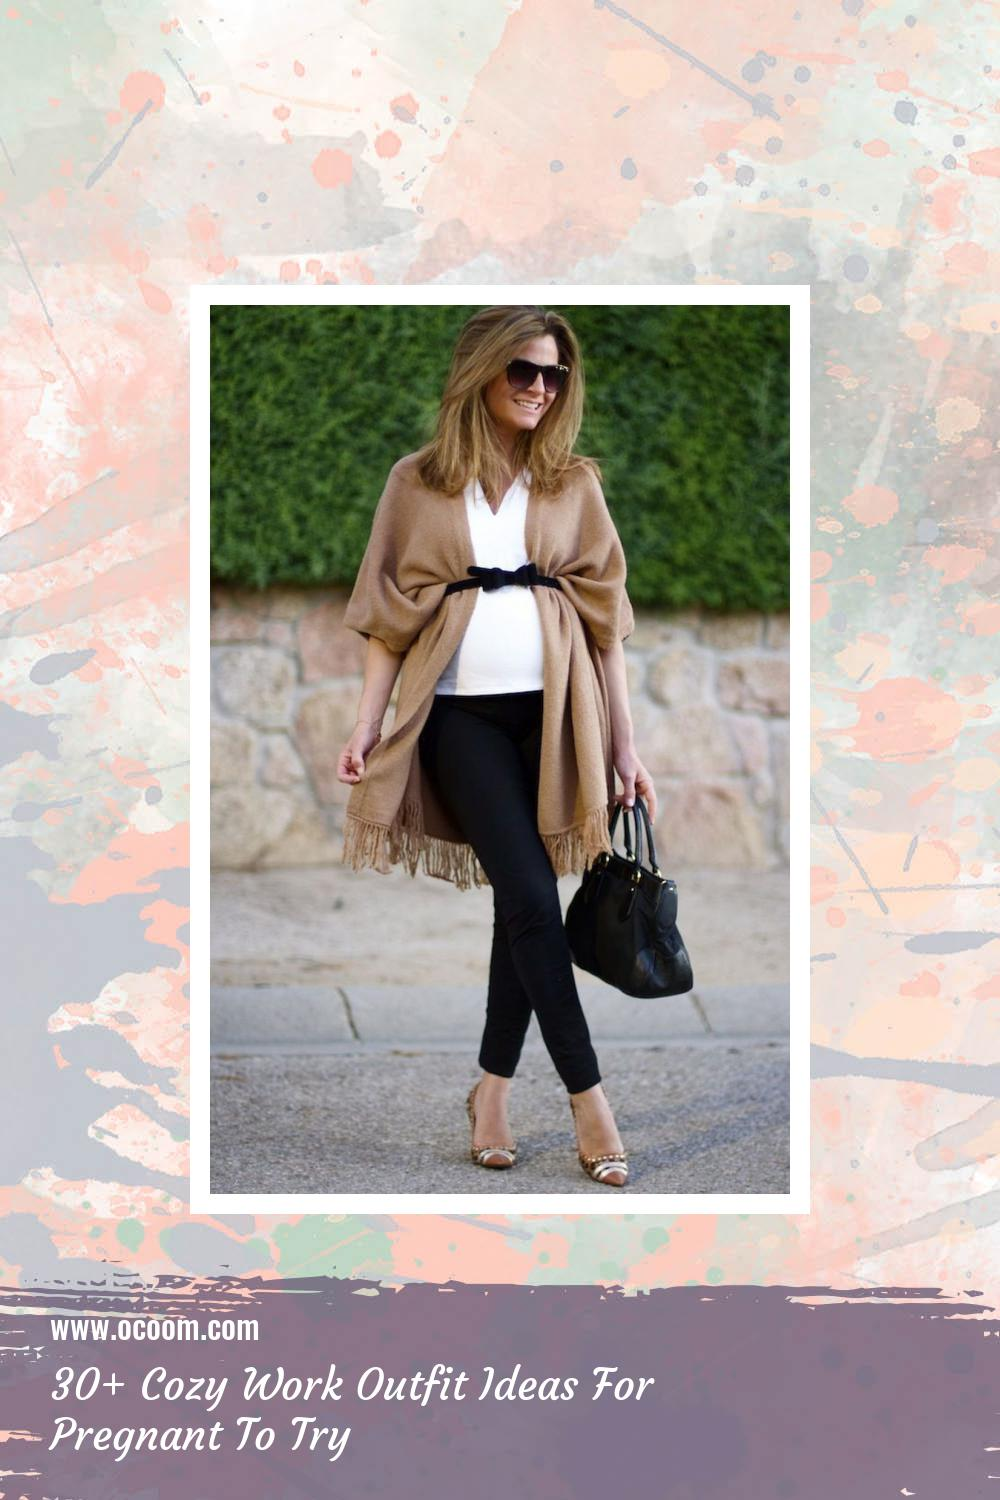 30+ Cozy Work Outfit Ideas For Pregnant To Try 11